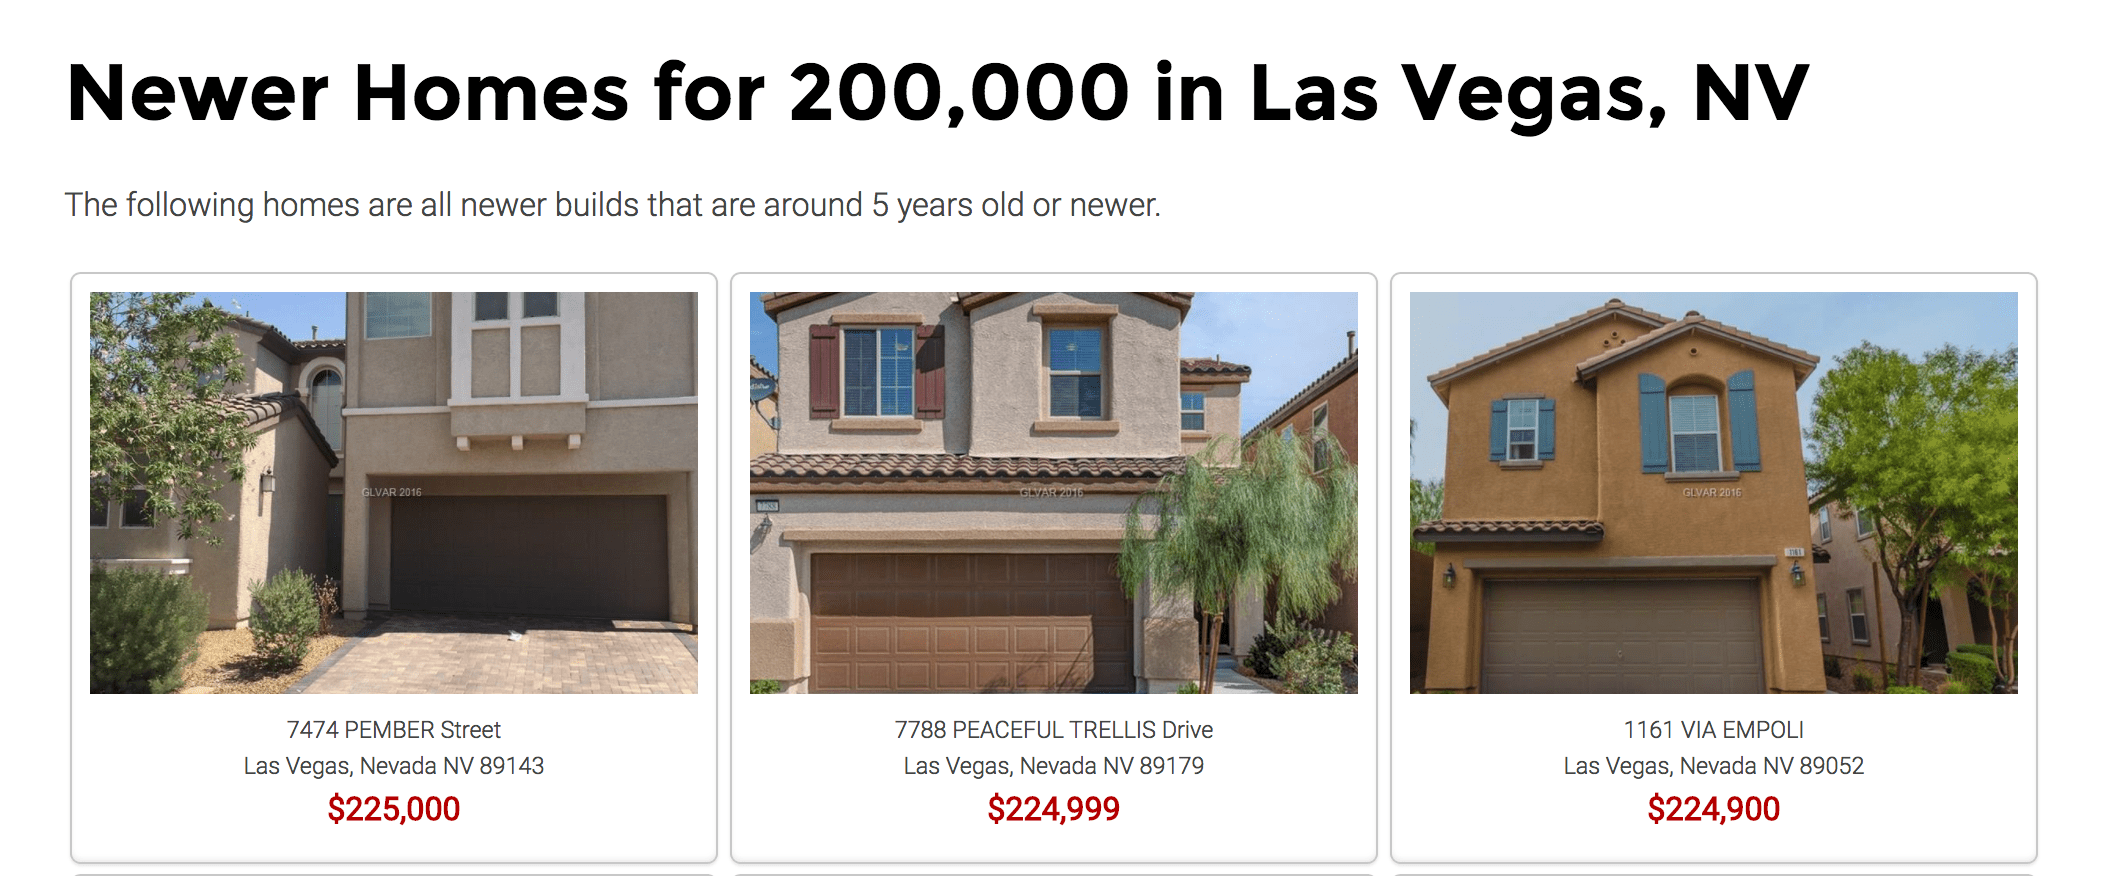 Sample of IDX listings when building a real estate website. Picture of 3 houses with prices